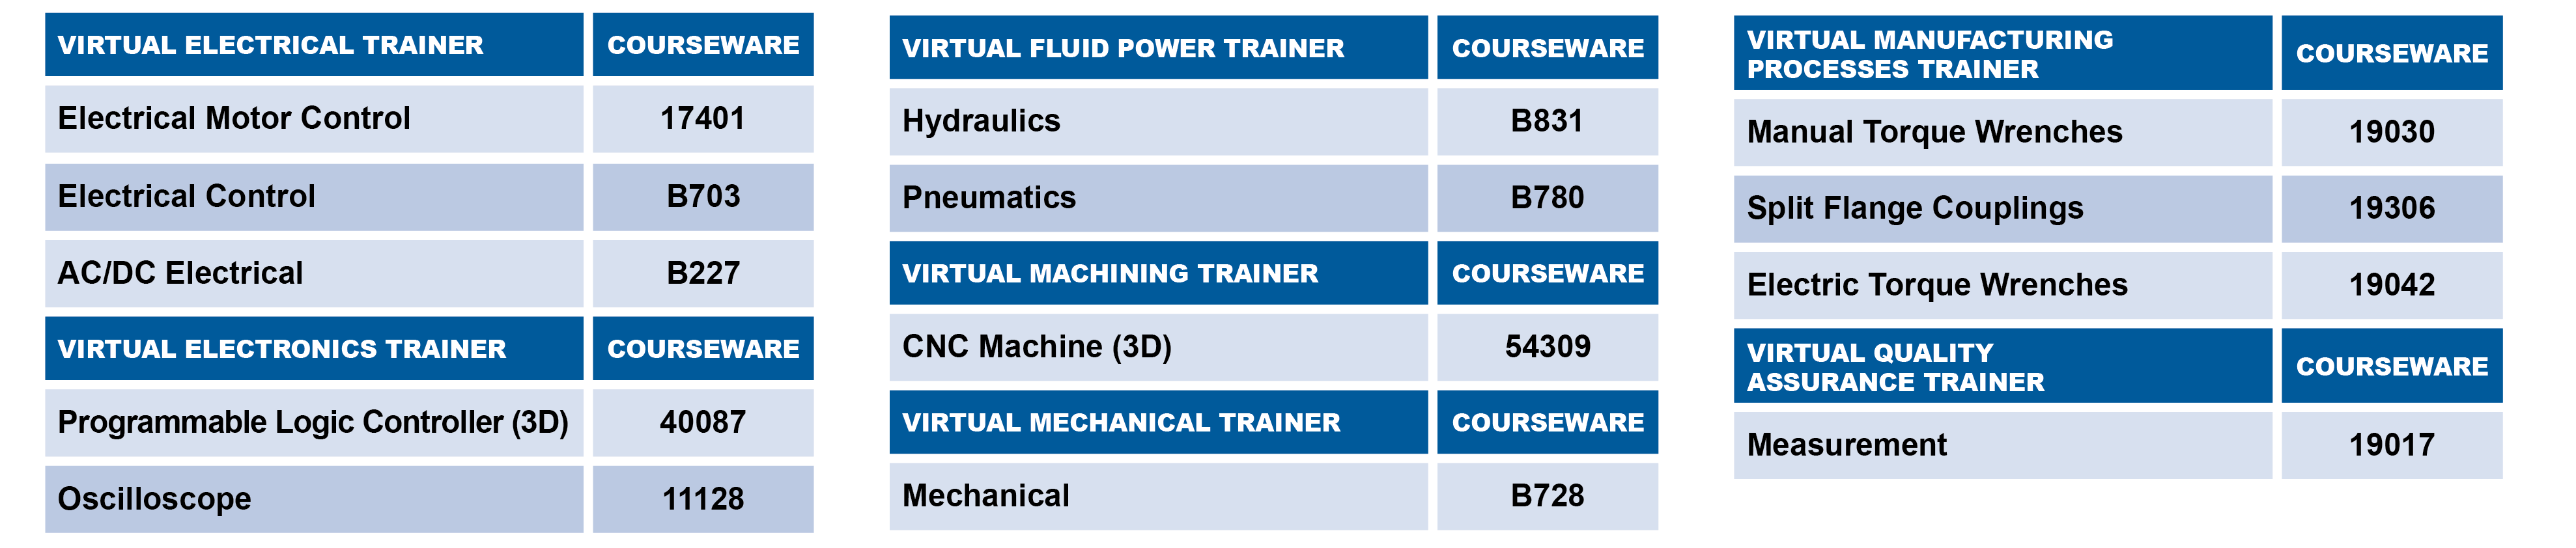 Virtual Technical Training Courses Available